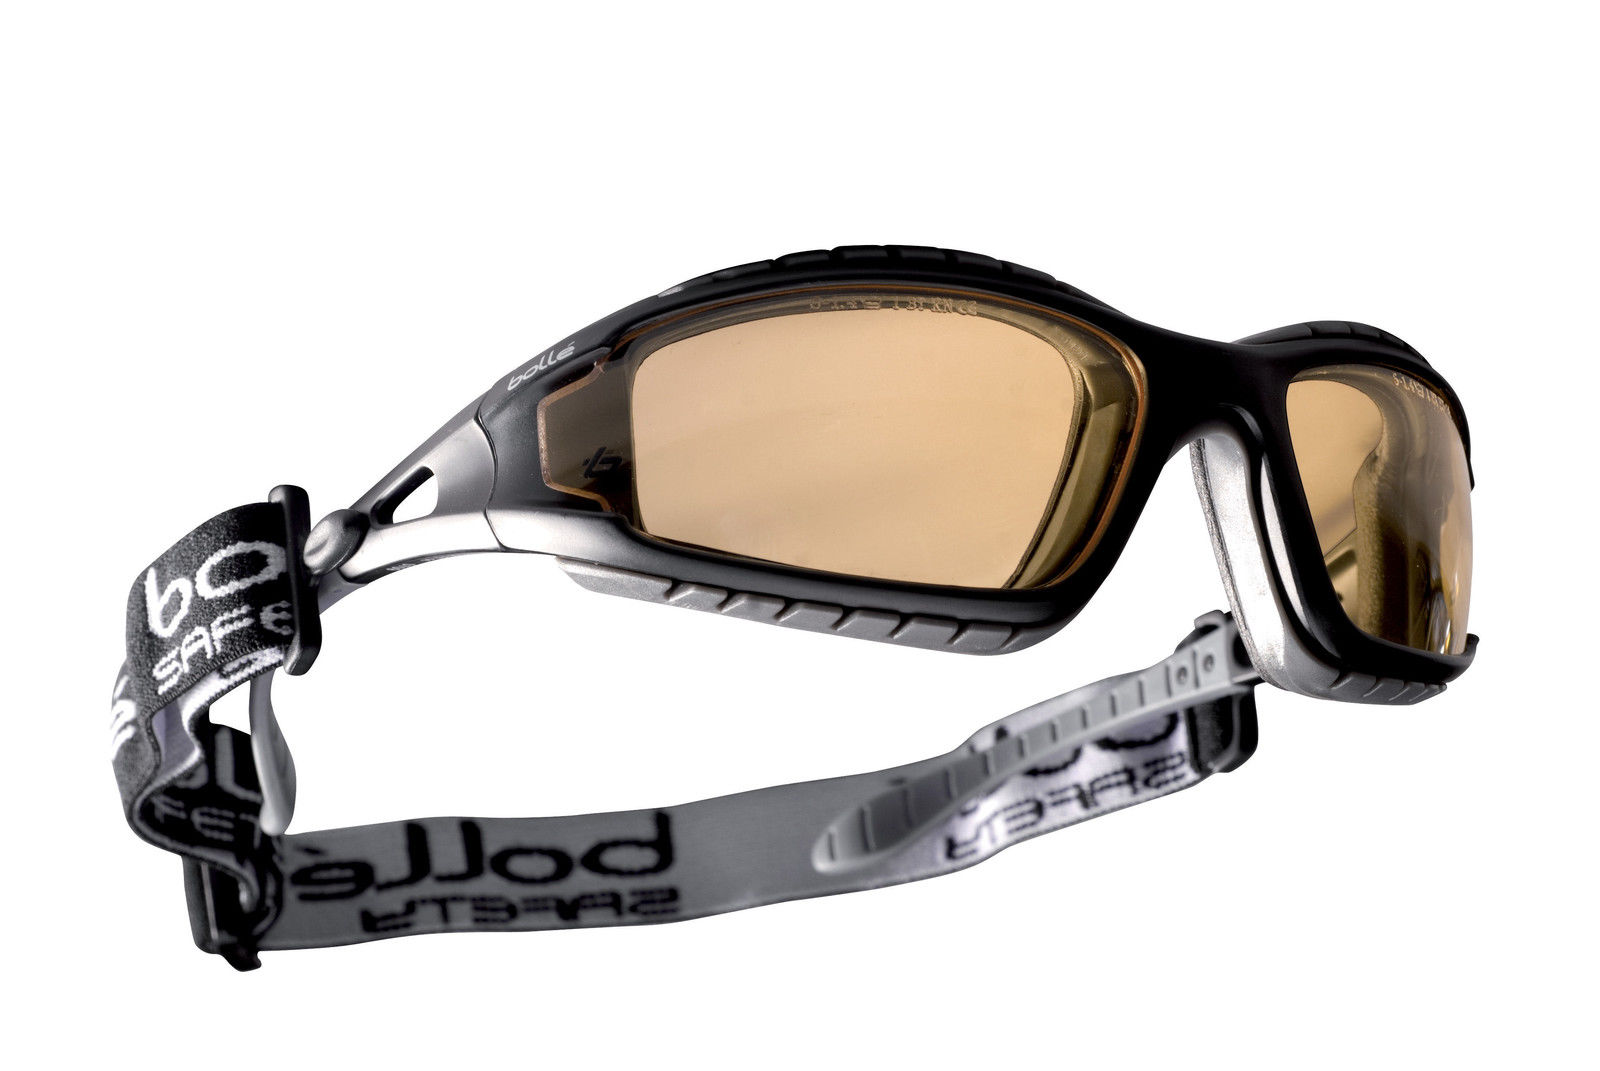 e80d687fa149c Bolle Tracker II 2 Safety Glasses Goggles Anti Mist and Scratch Yellow